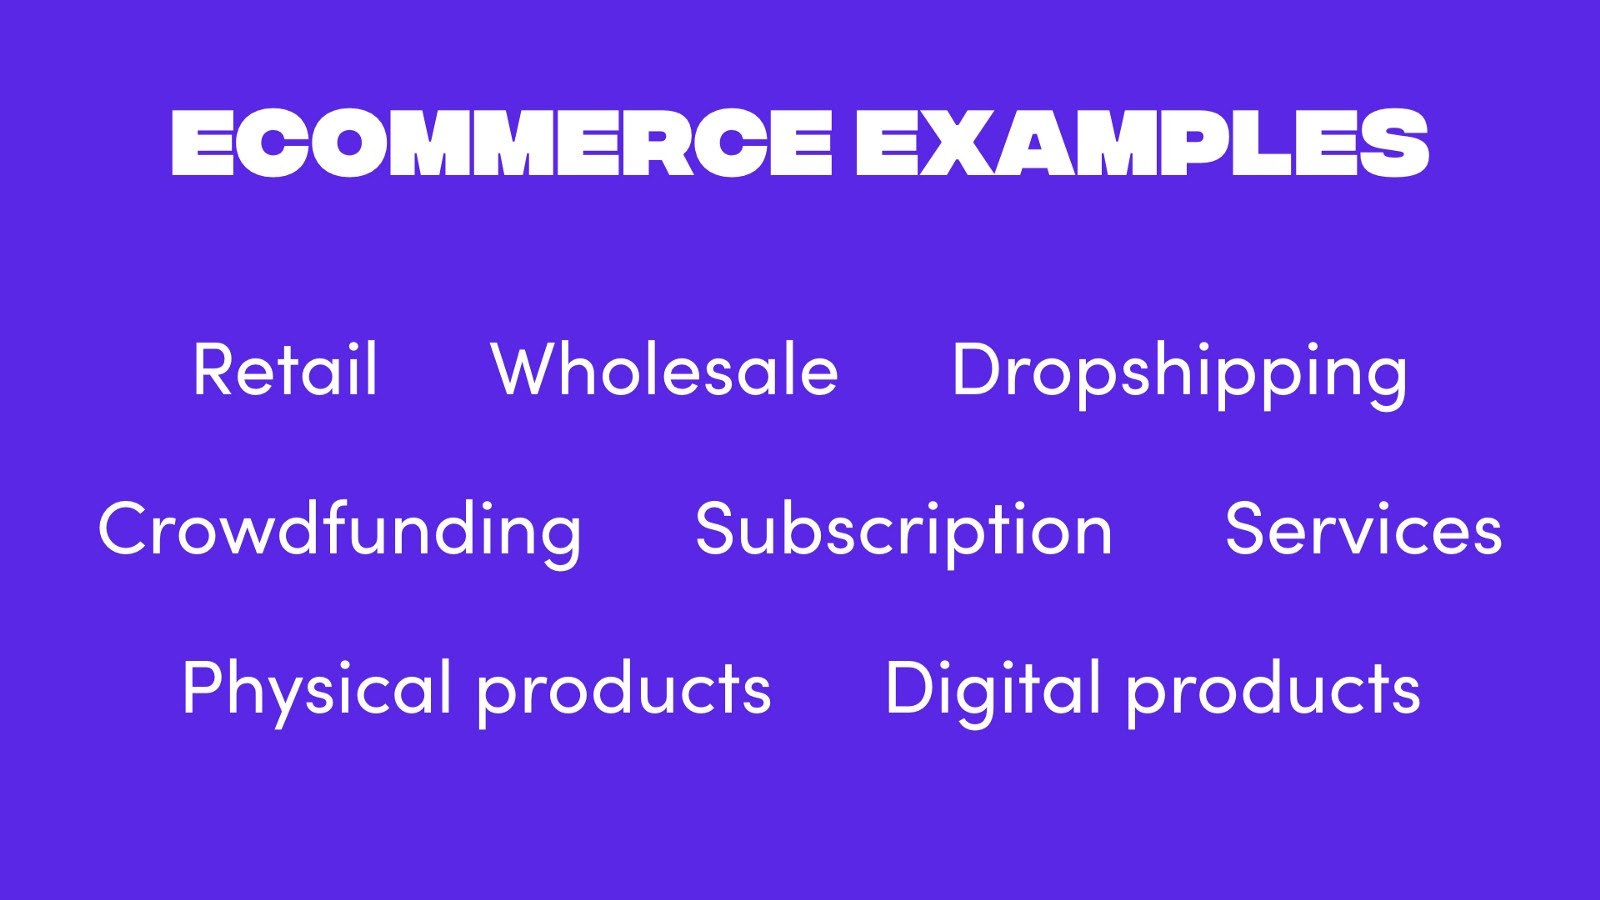 Examples of ecommerce